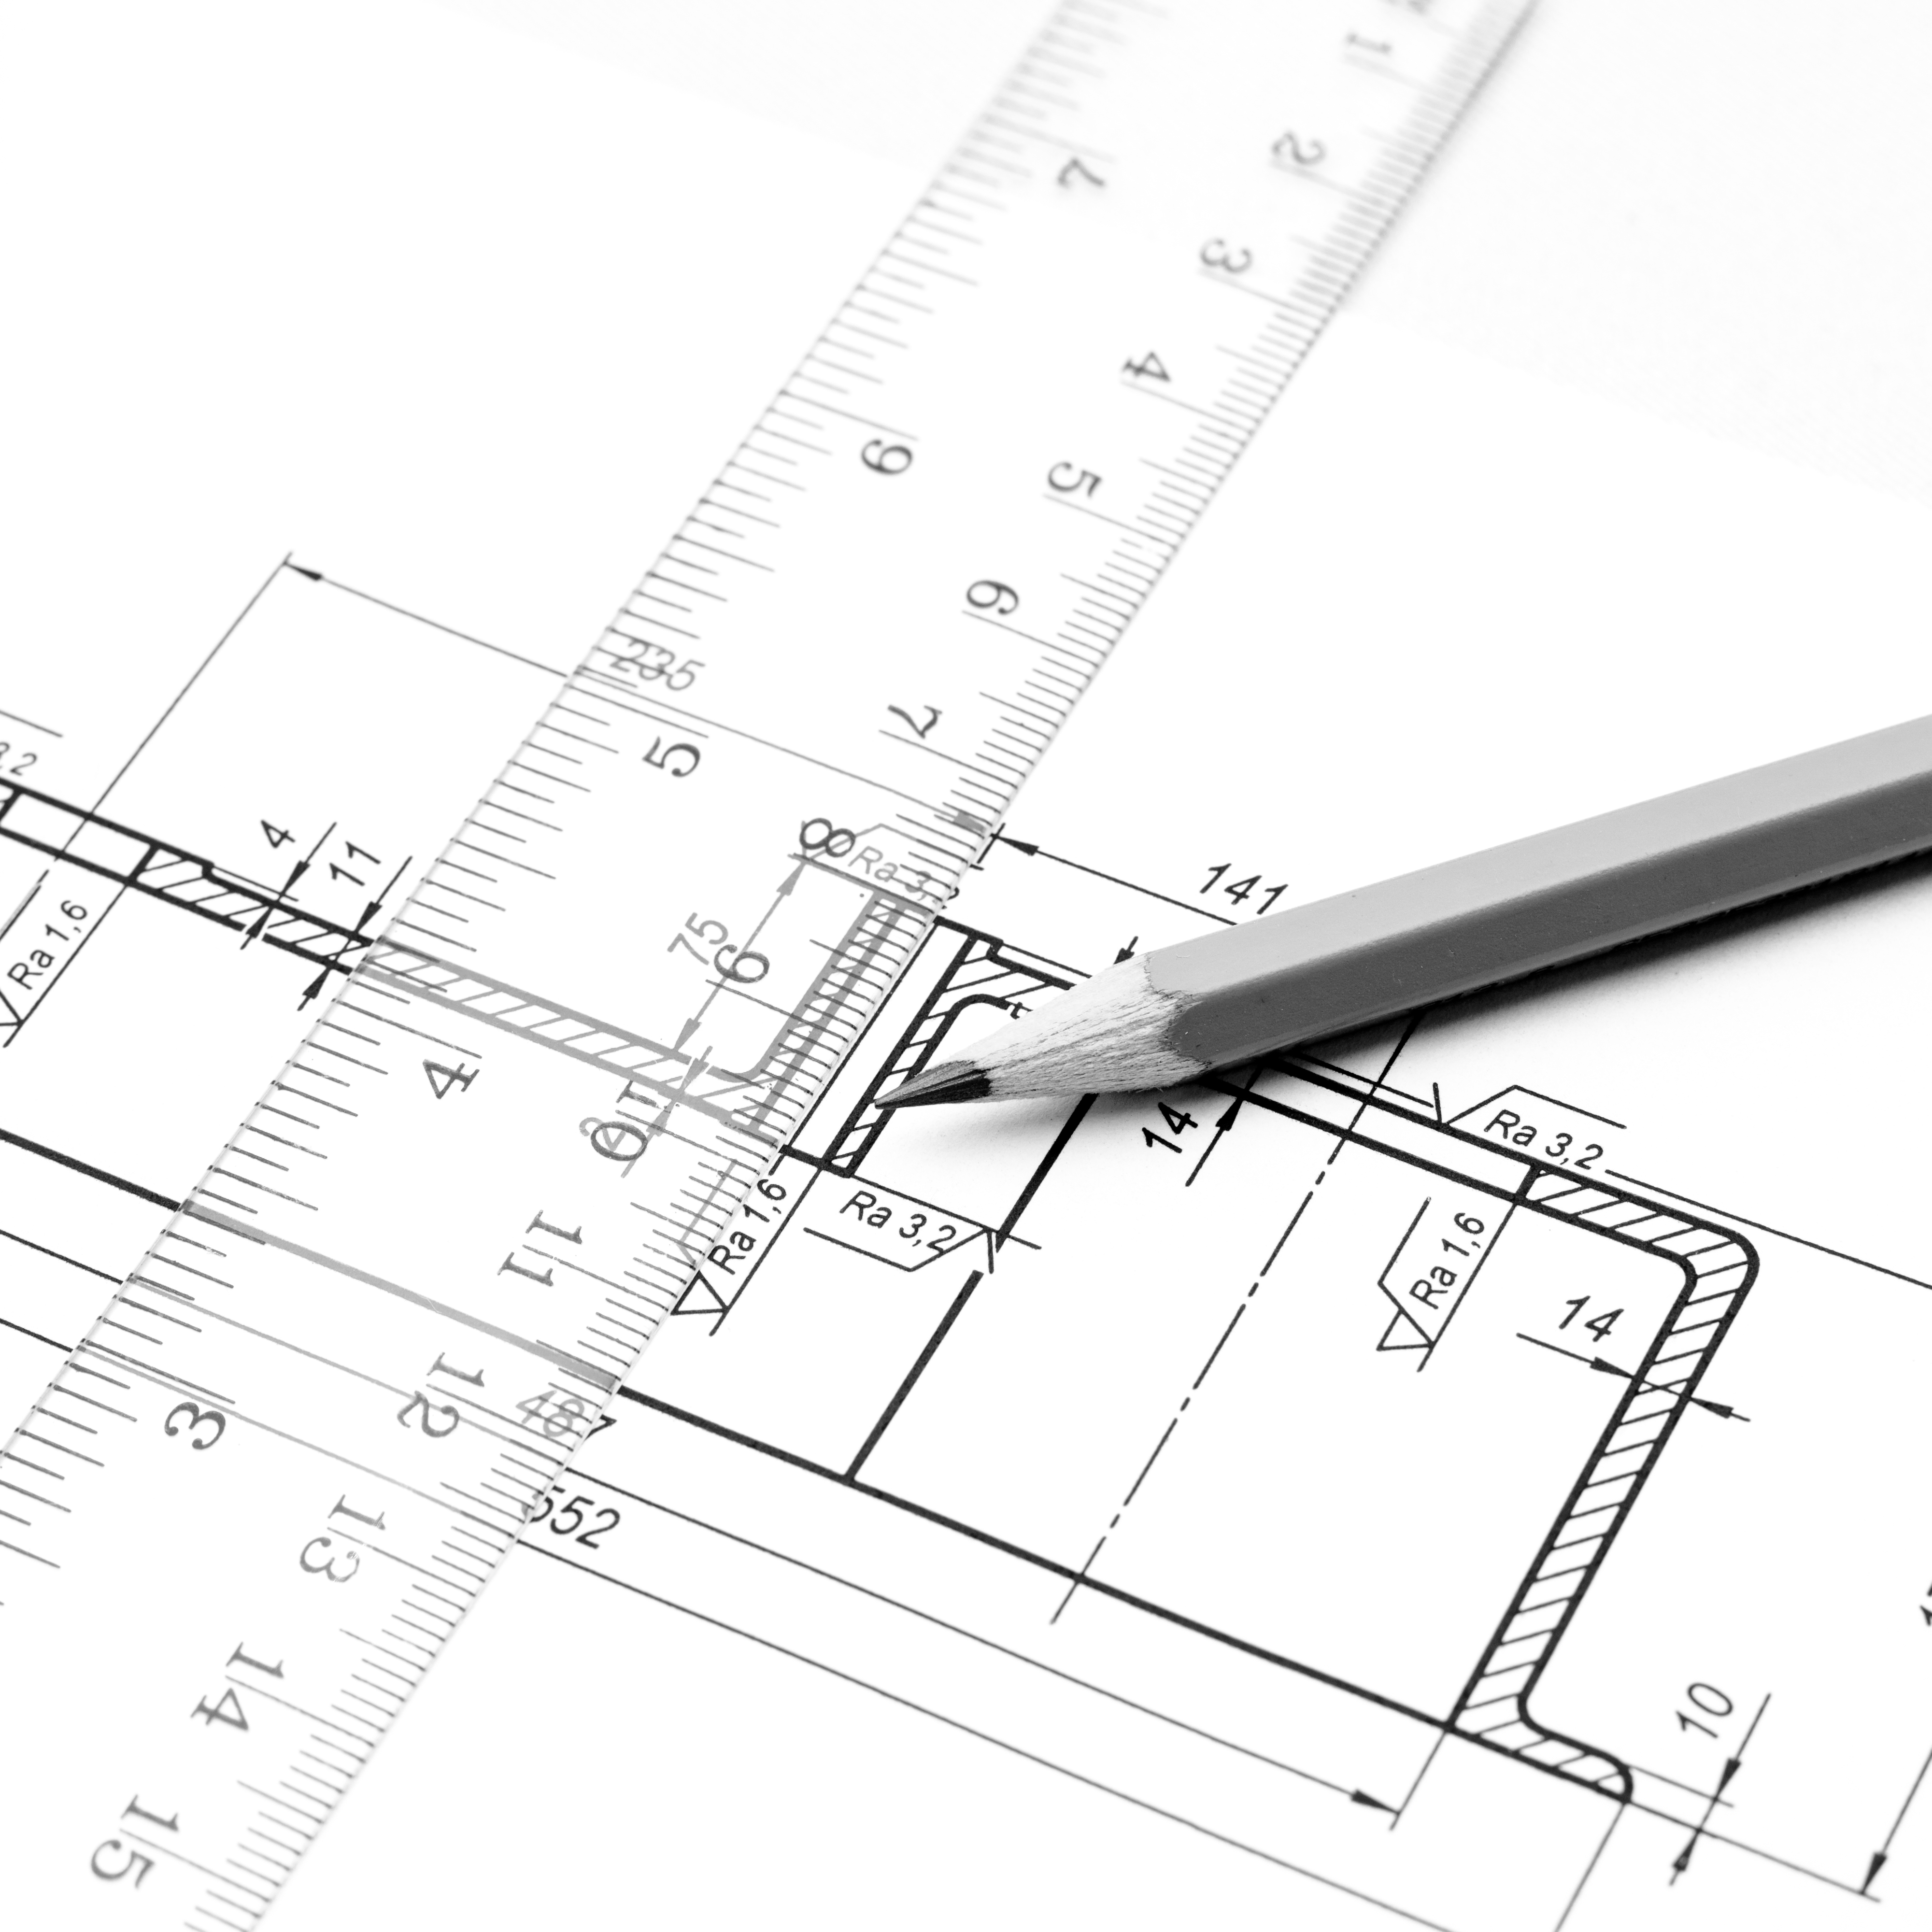 Planning Permissions South West London